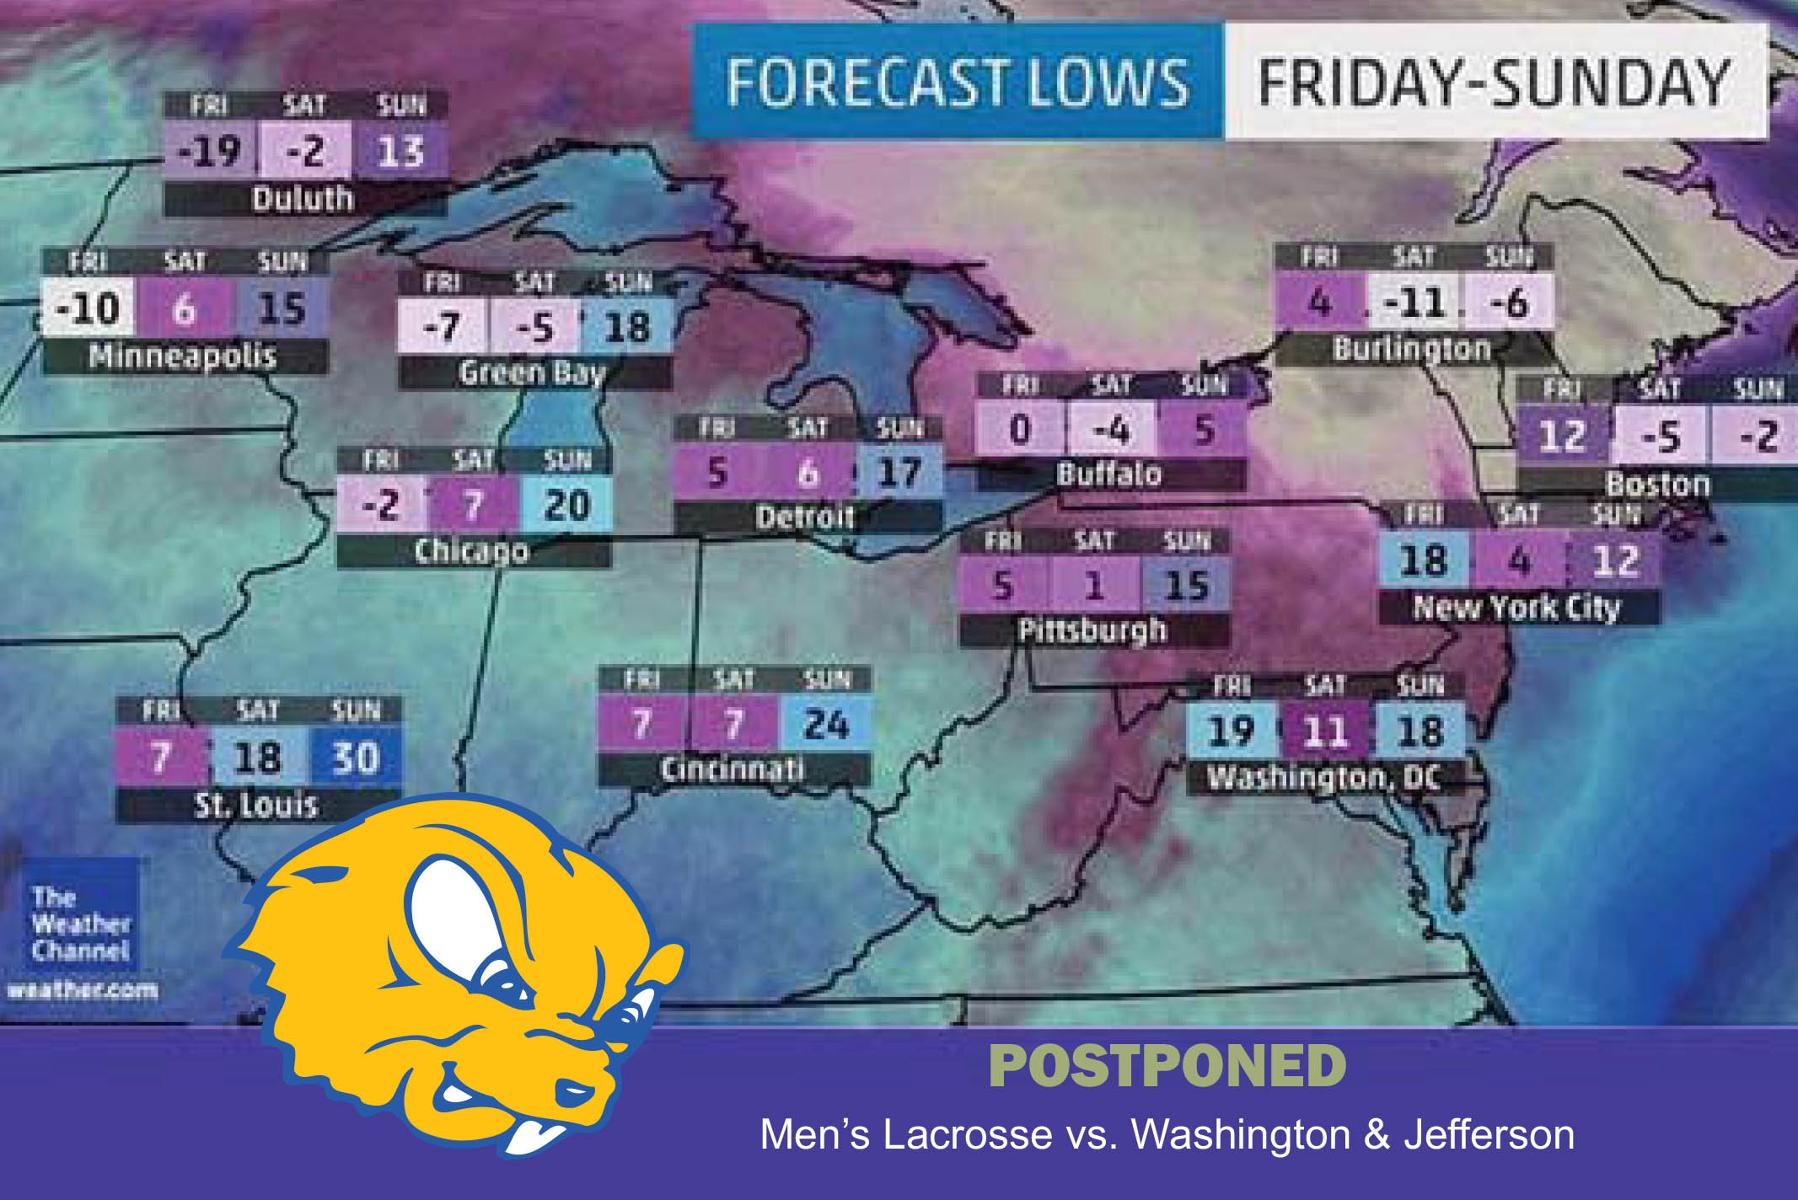 Gophers, Presidents Won't Play Due to Bitter Cold